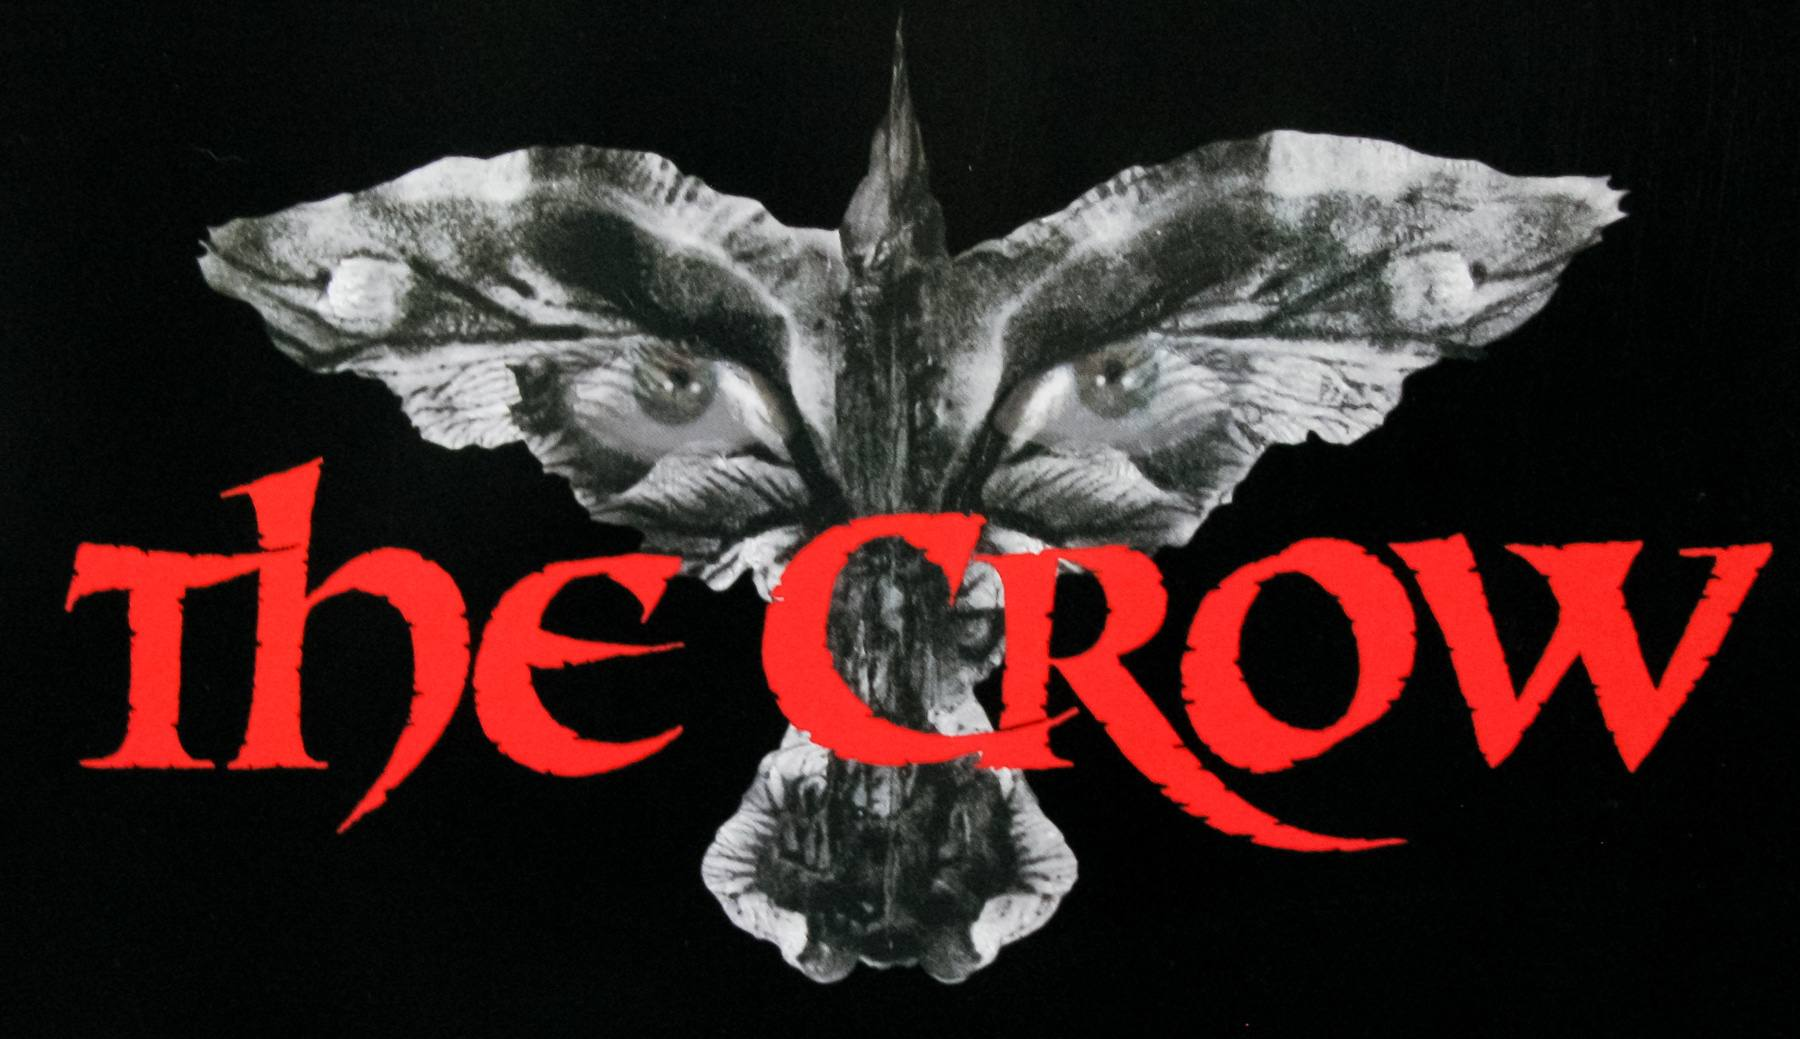 The crow logo - photo#52